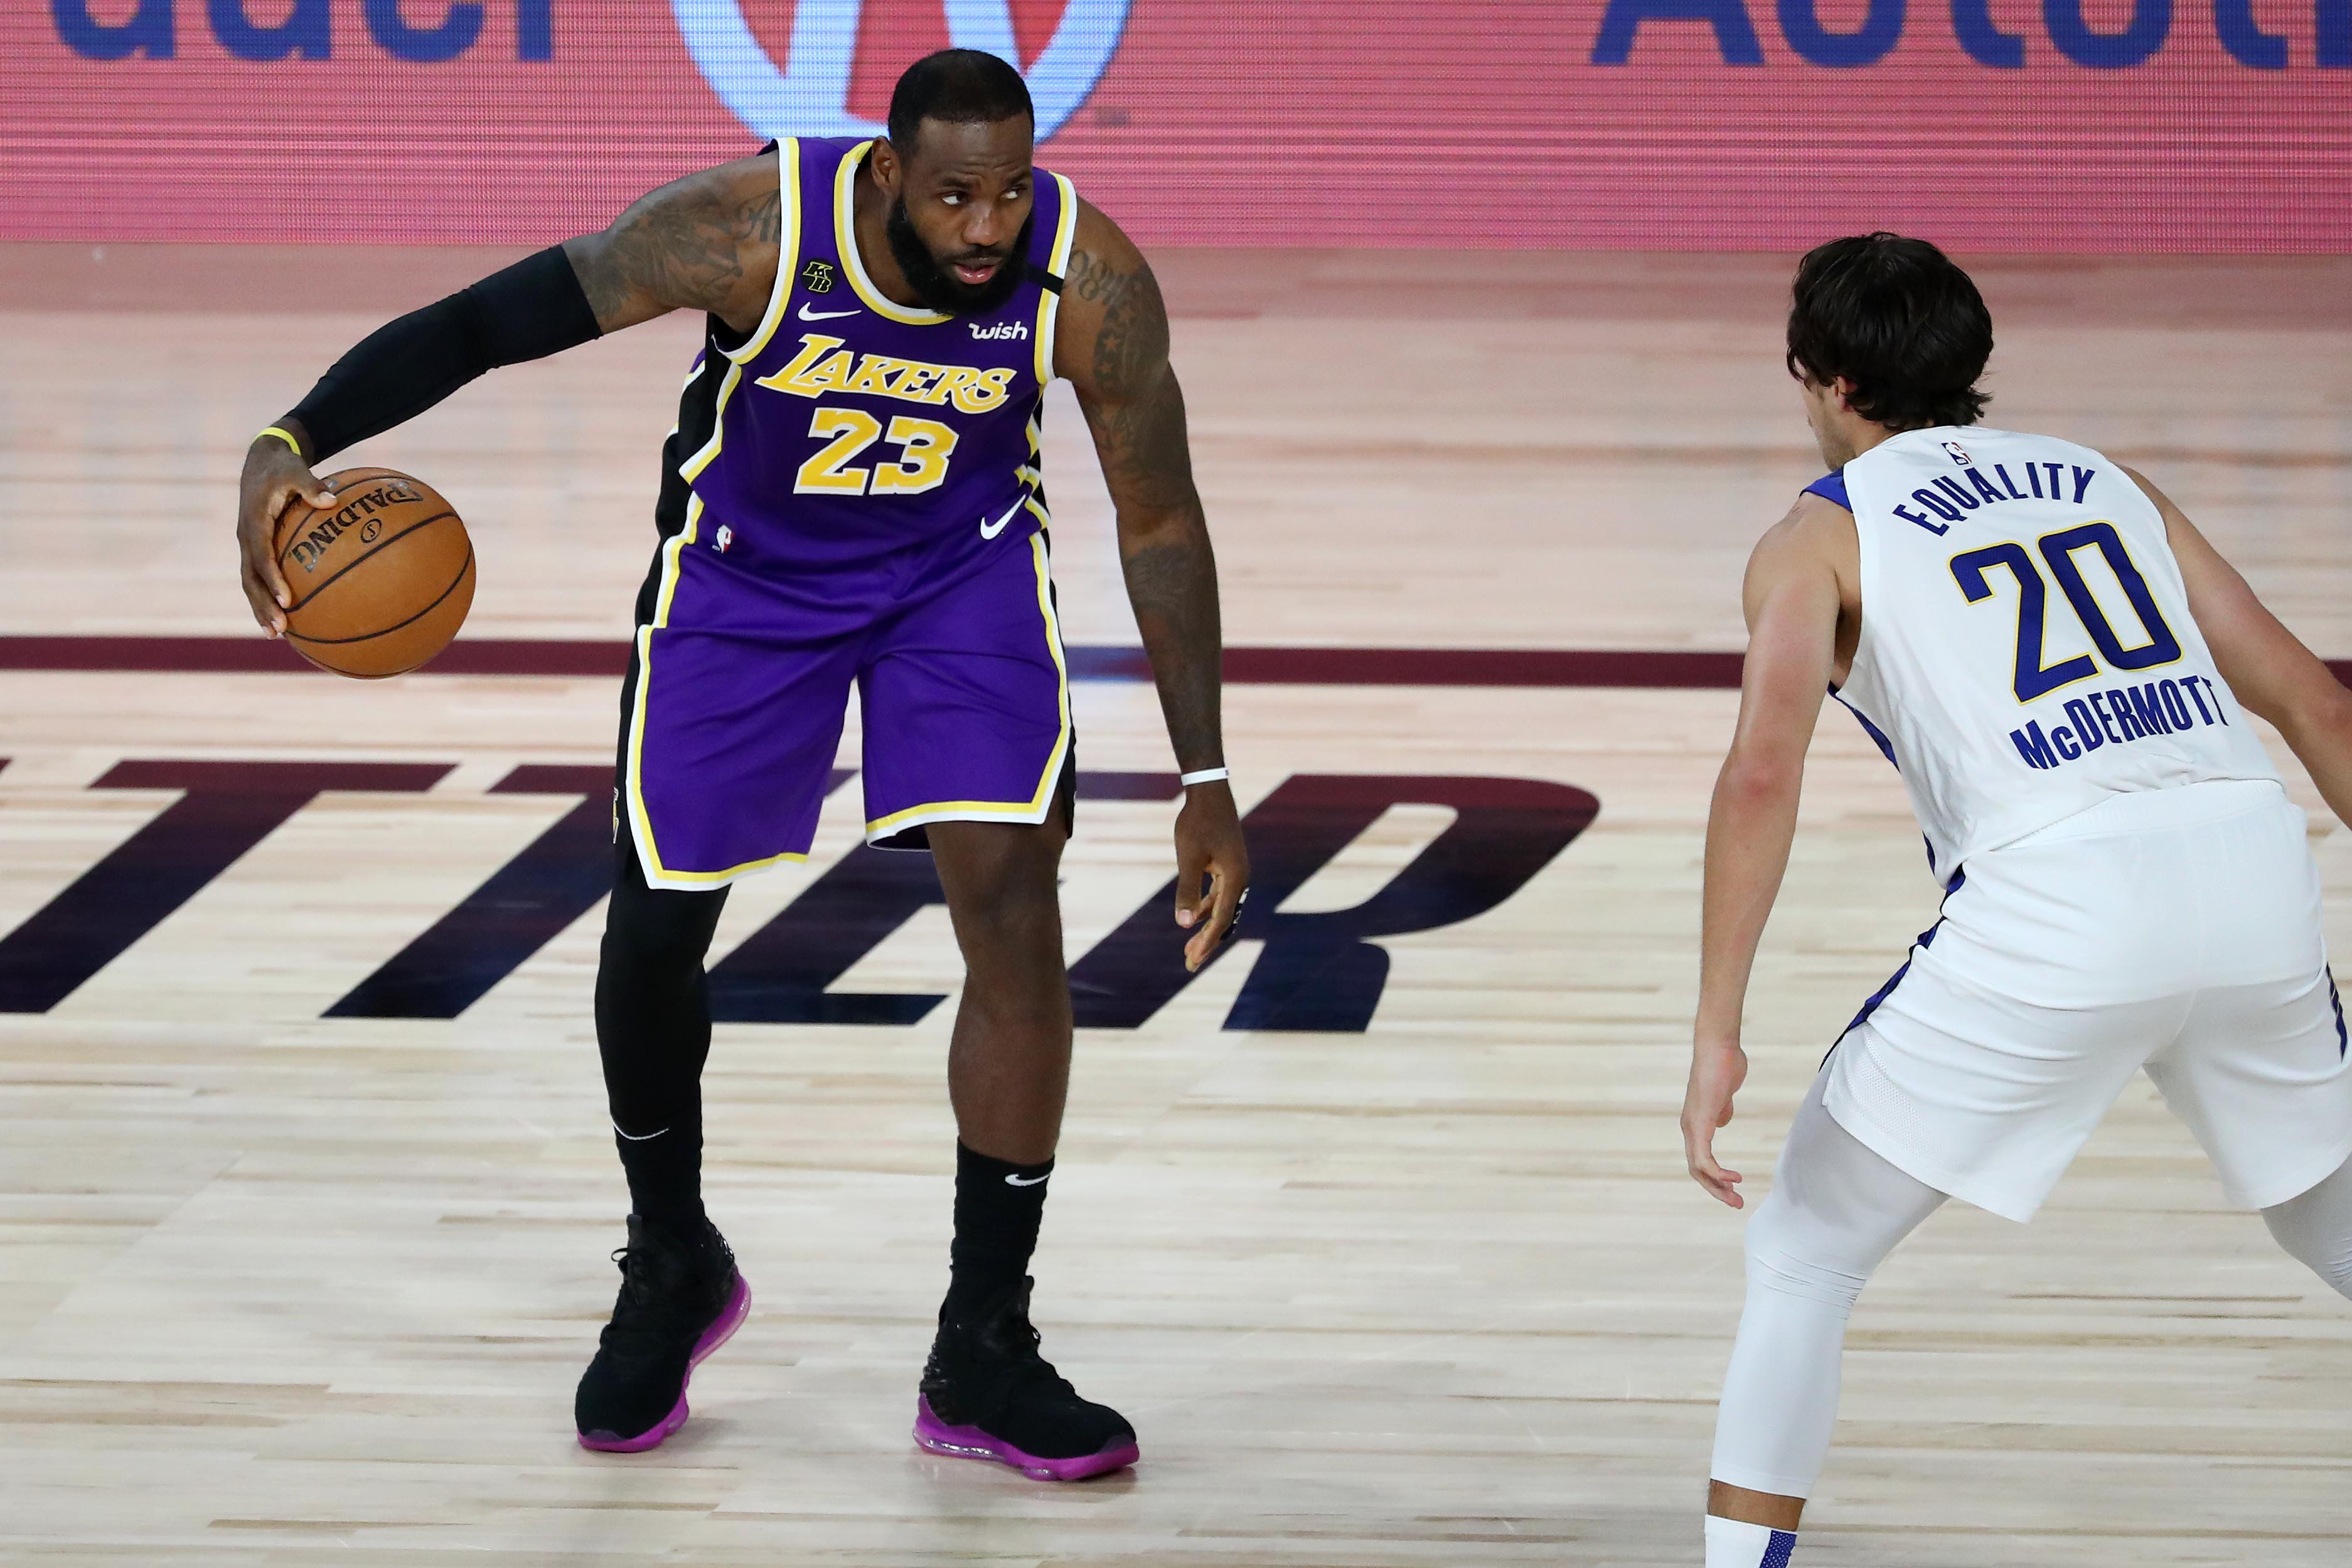 Los Angeles Lakers Vs Denver Nuggets Free Live Stream 8 10 20 How To Watch Nba Games Time Channel Pennlive Com